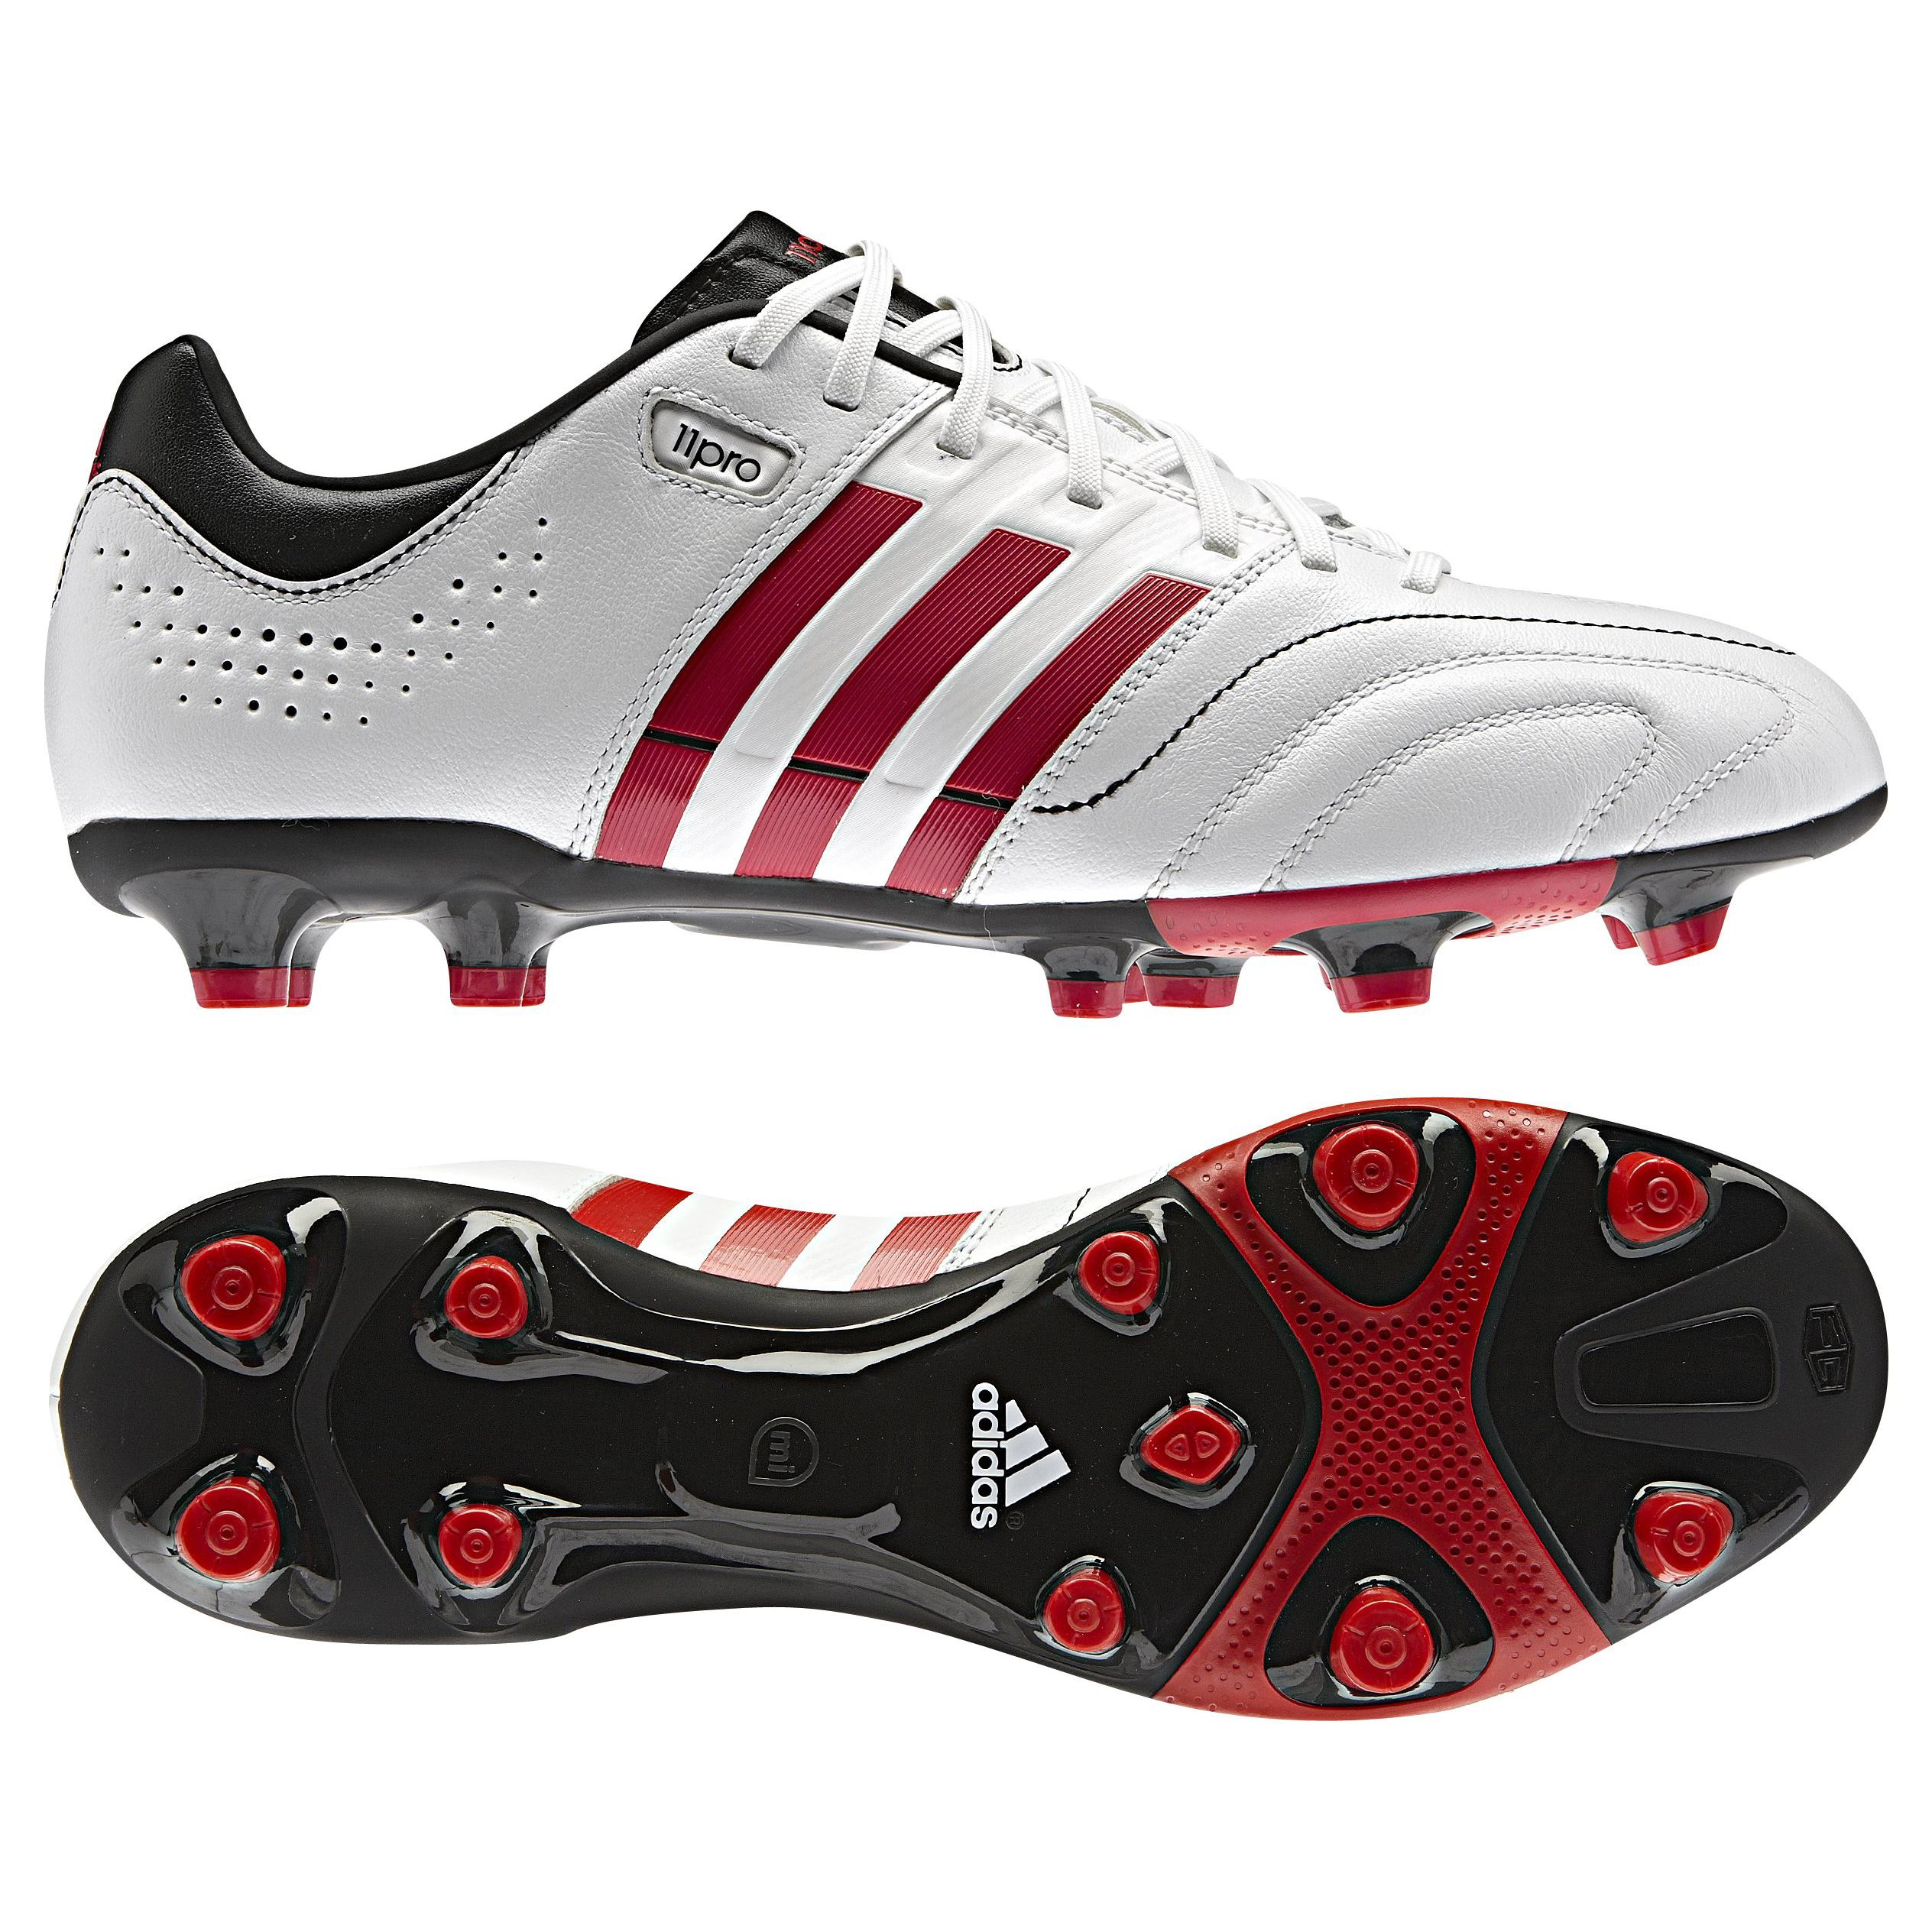 AdiPure 11Core TRX FG White/Vivid Red/Black